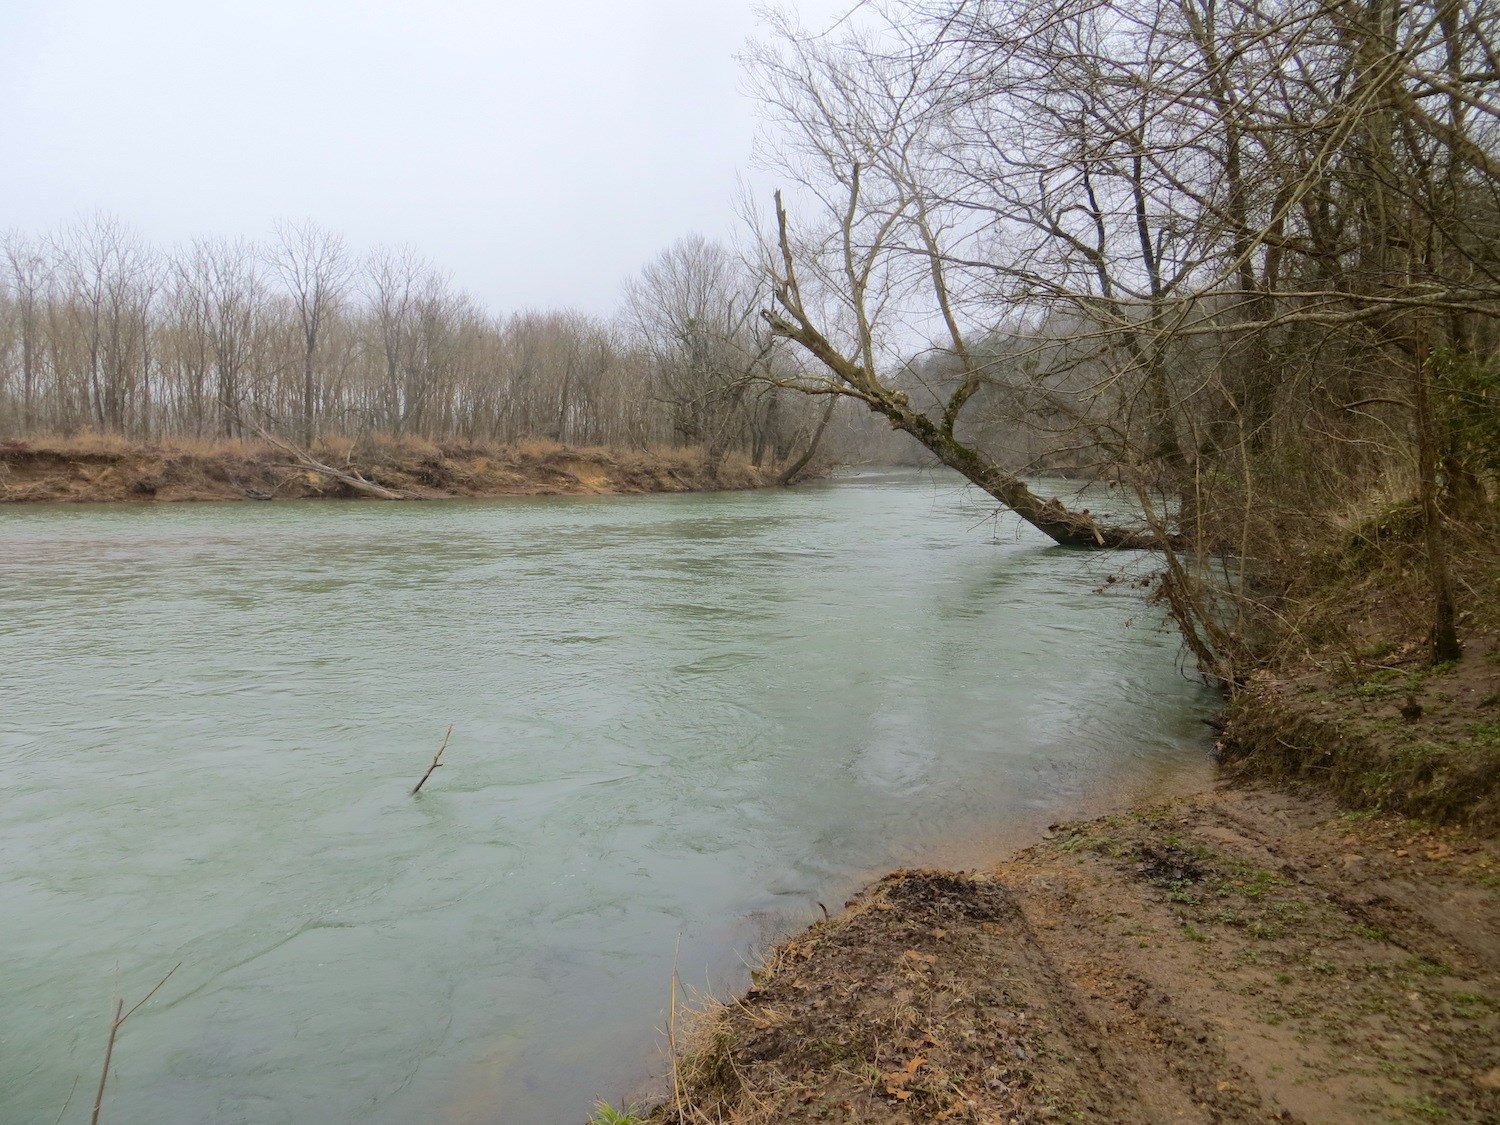 Acreage for Sale on 11-Point River